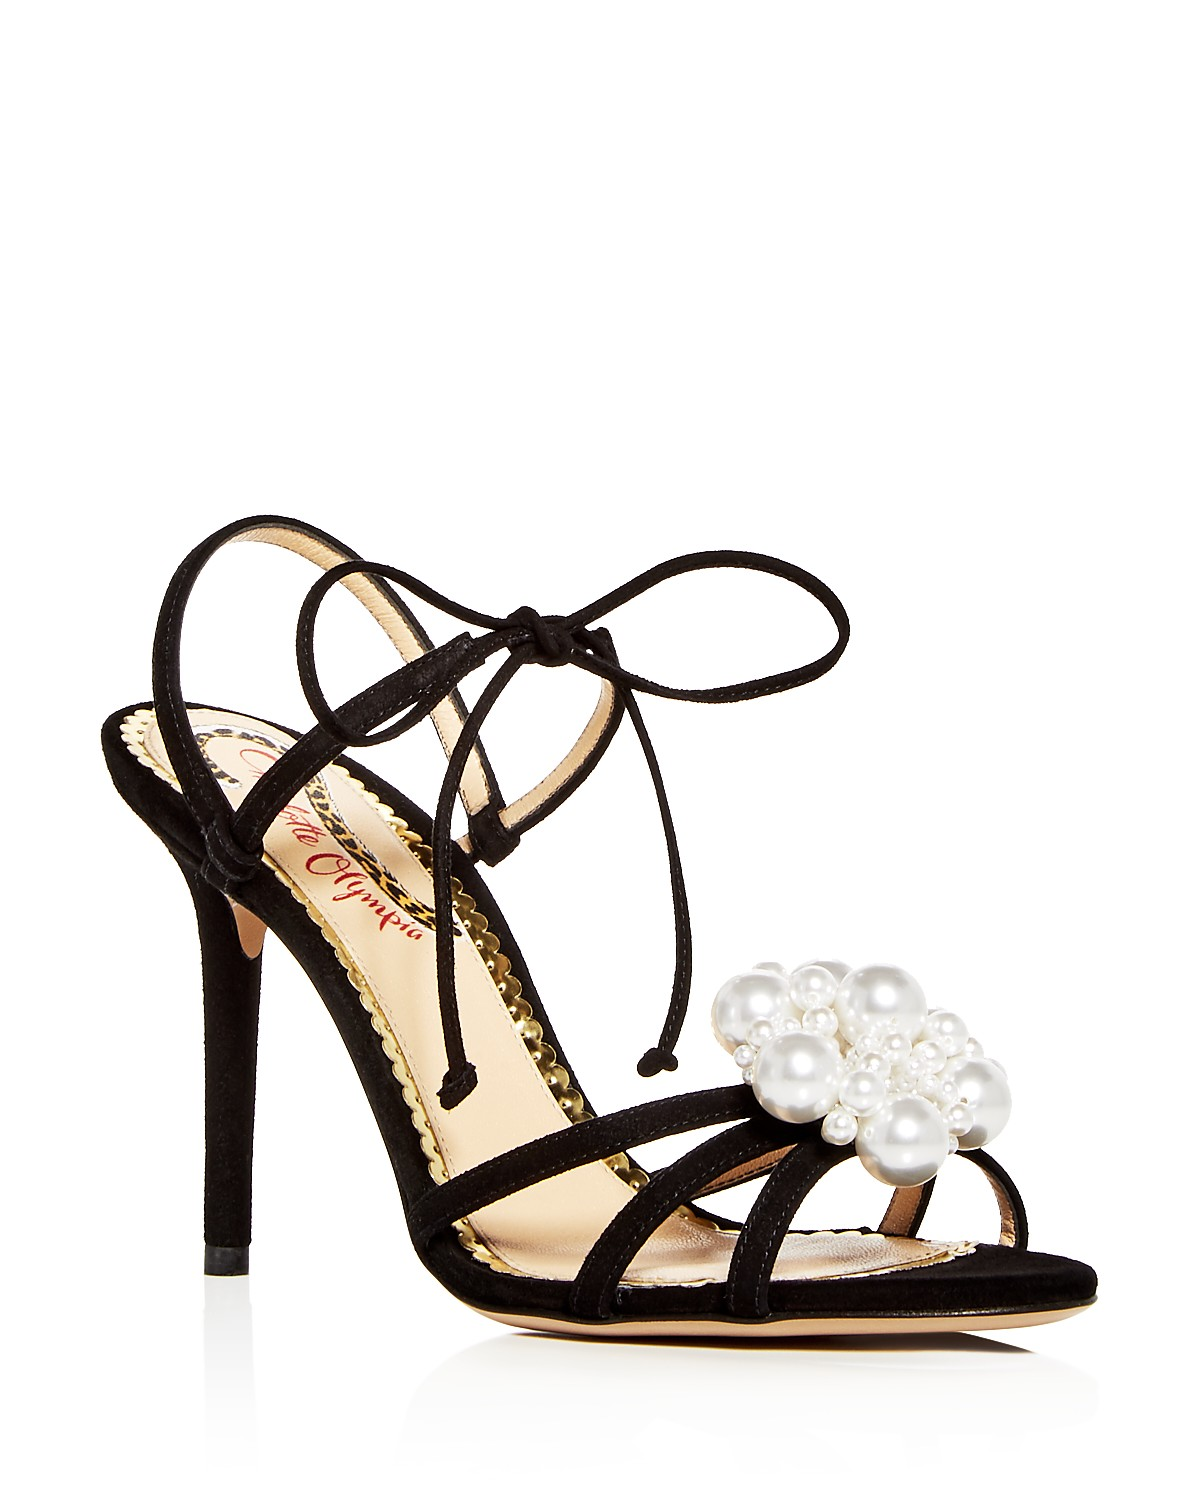 Charlotte Olympia Women's Tallulah Embellished Suede Ankle Tie High-Heel Sandals zYUfzW